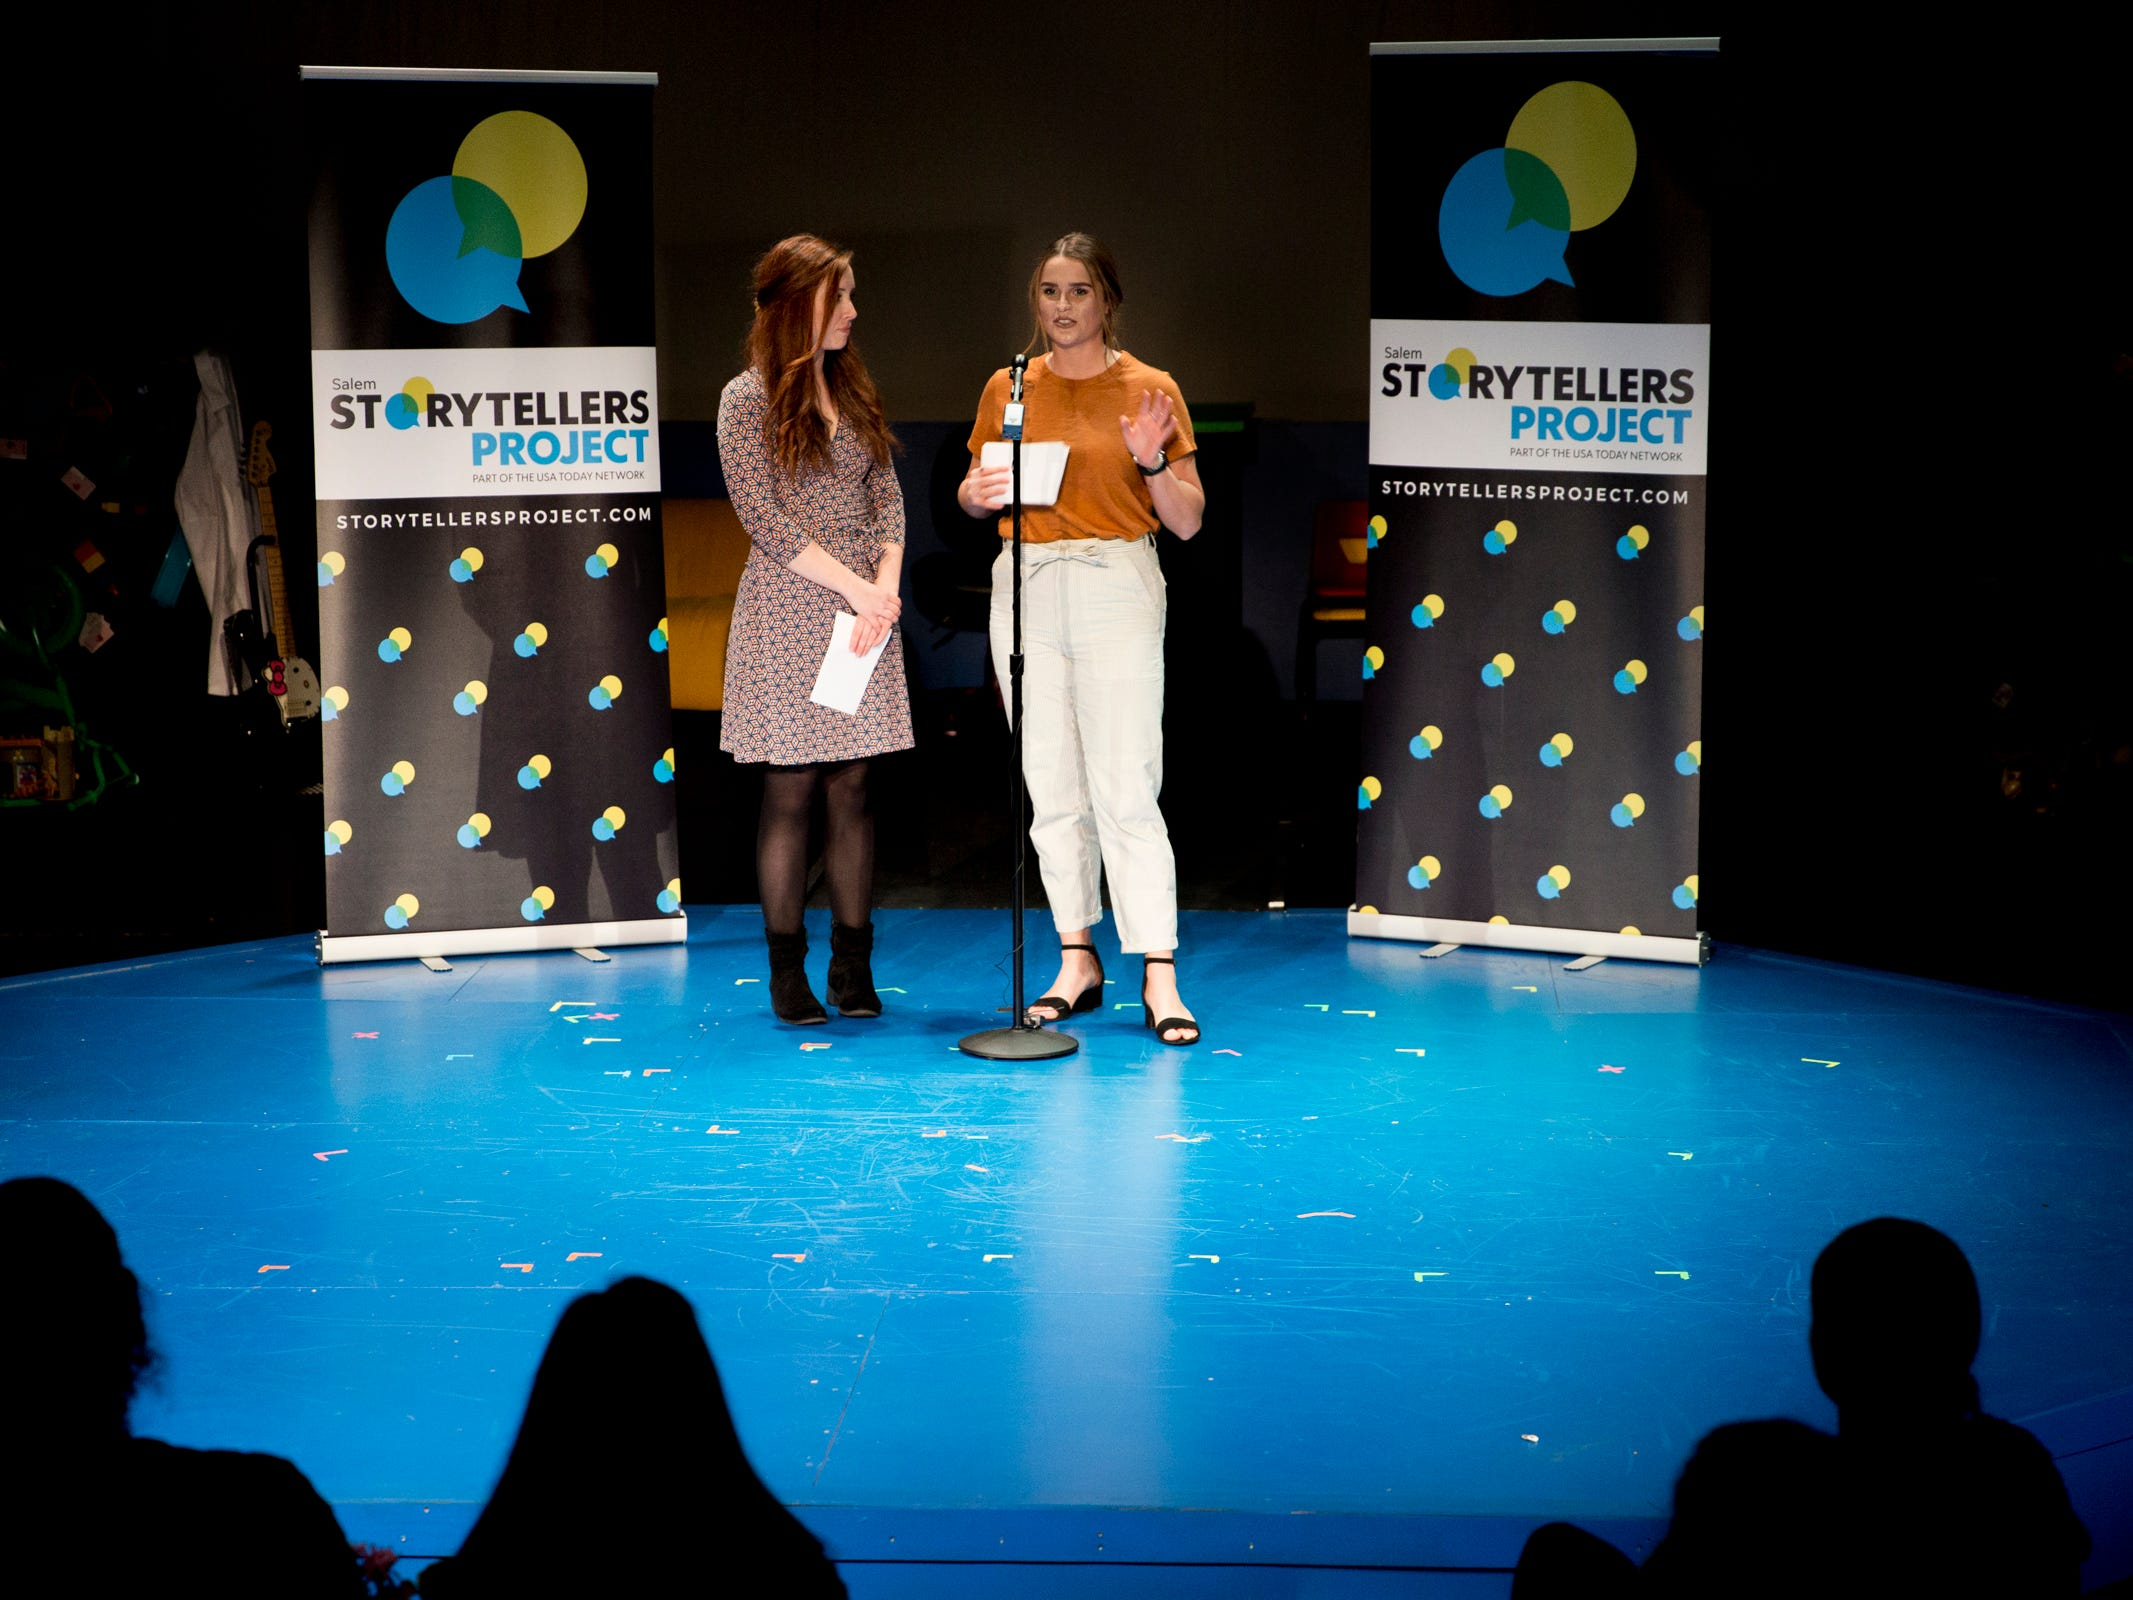 Statesman Journal reporters Natalie Pate, left, and Abby Luschei emcee Salem Storytellers Project presents Romance, or Not at the Pentacle Theatre in Salem on Tuesday, Feb. 5, 2019.